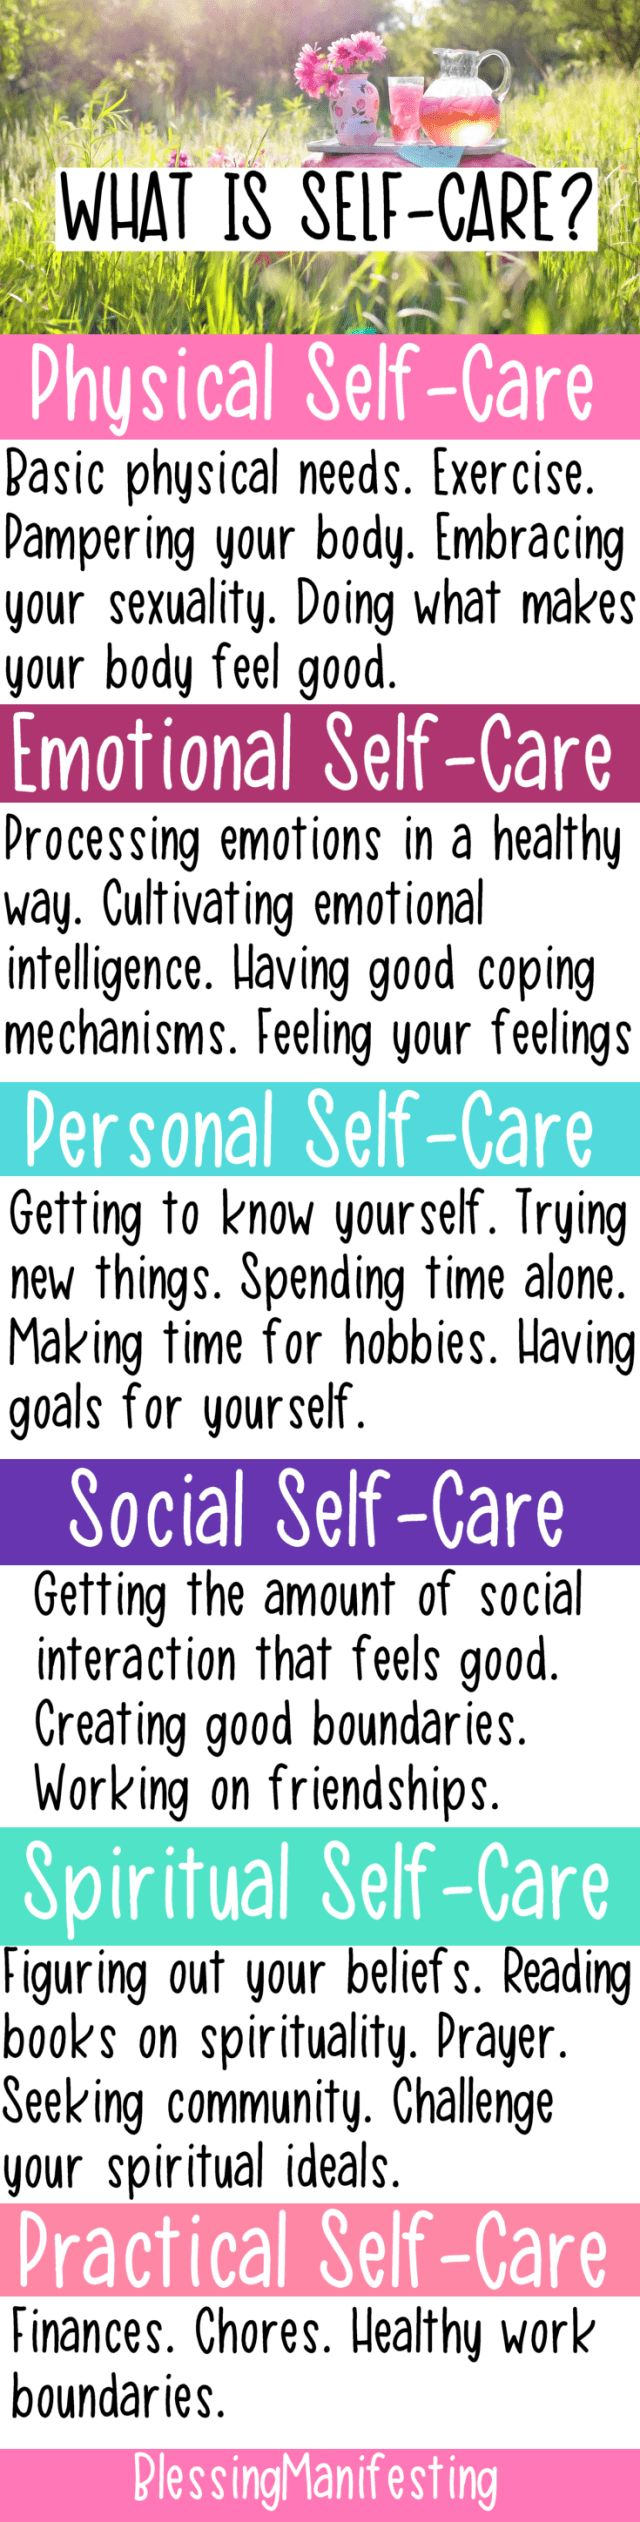 self-care pin